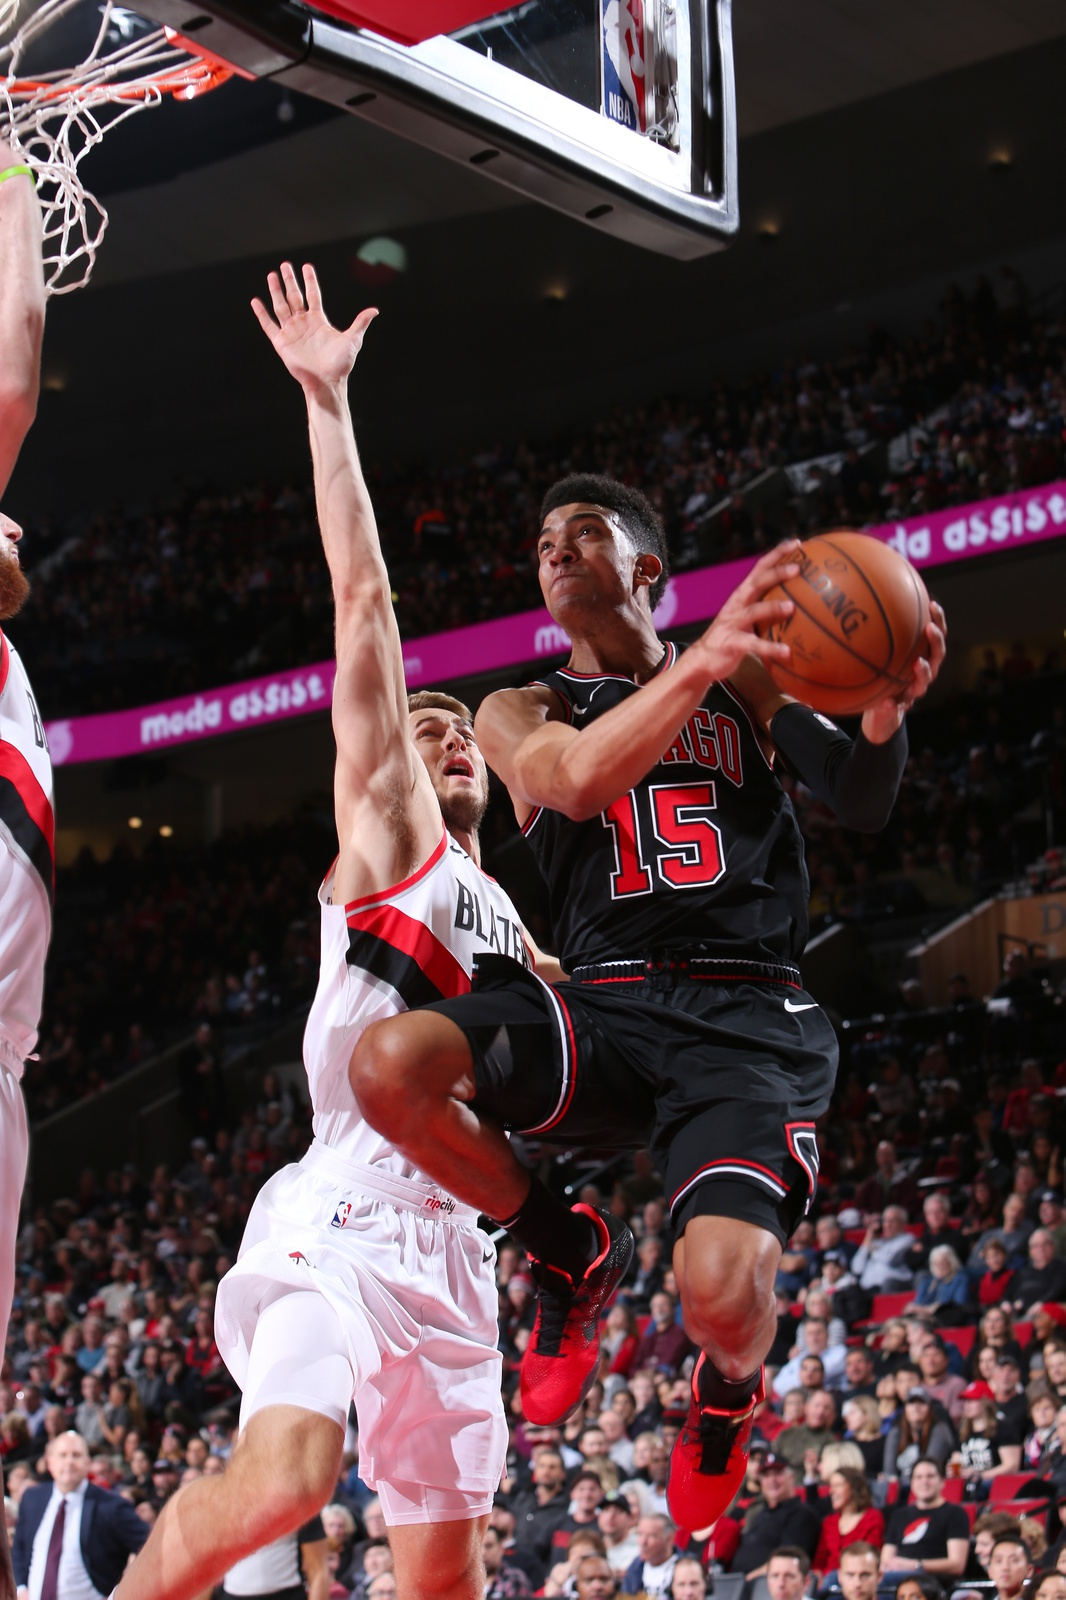 Chandler Hutchison #15 of the Chicago Bulls drives to the basket during the game against the Portland Trail Blazers on January 9, 2019 at the Moda Center Arena in Portland, Oregon.